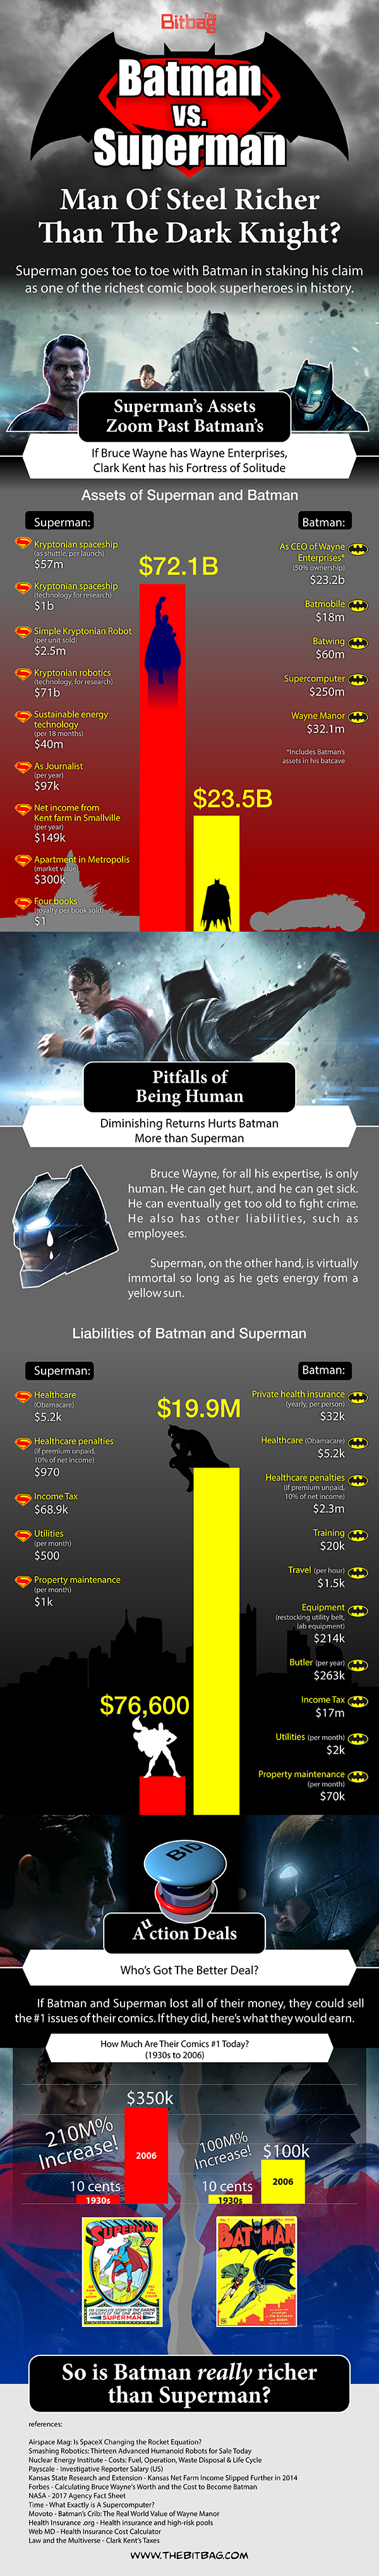 Who's Richer: Batman vs Superman